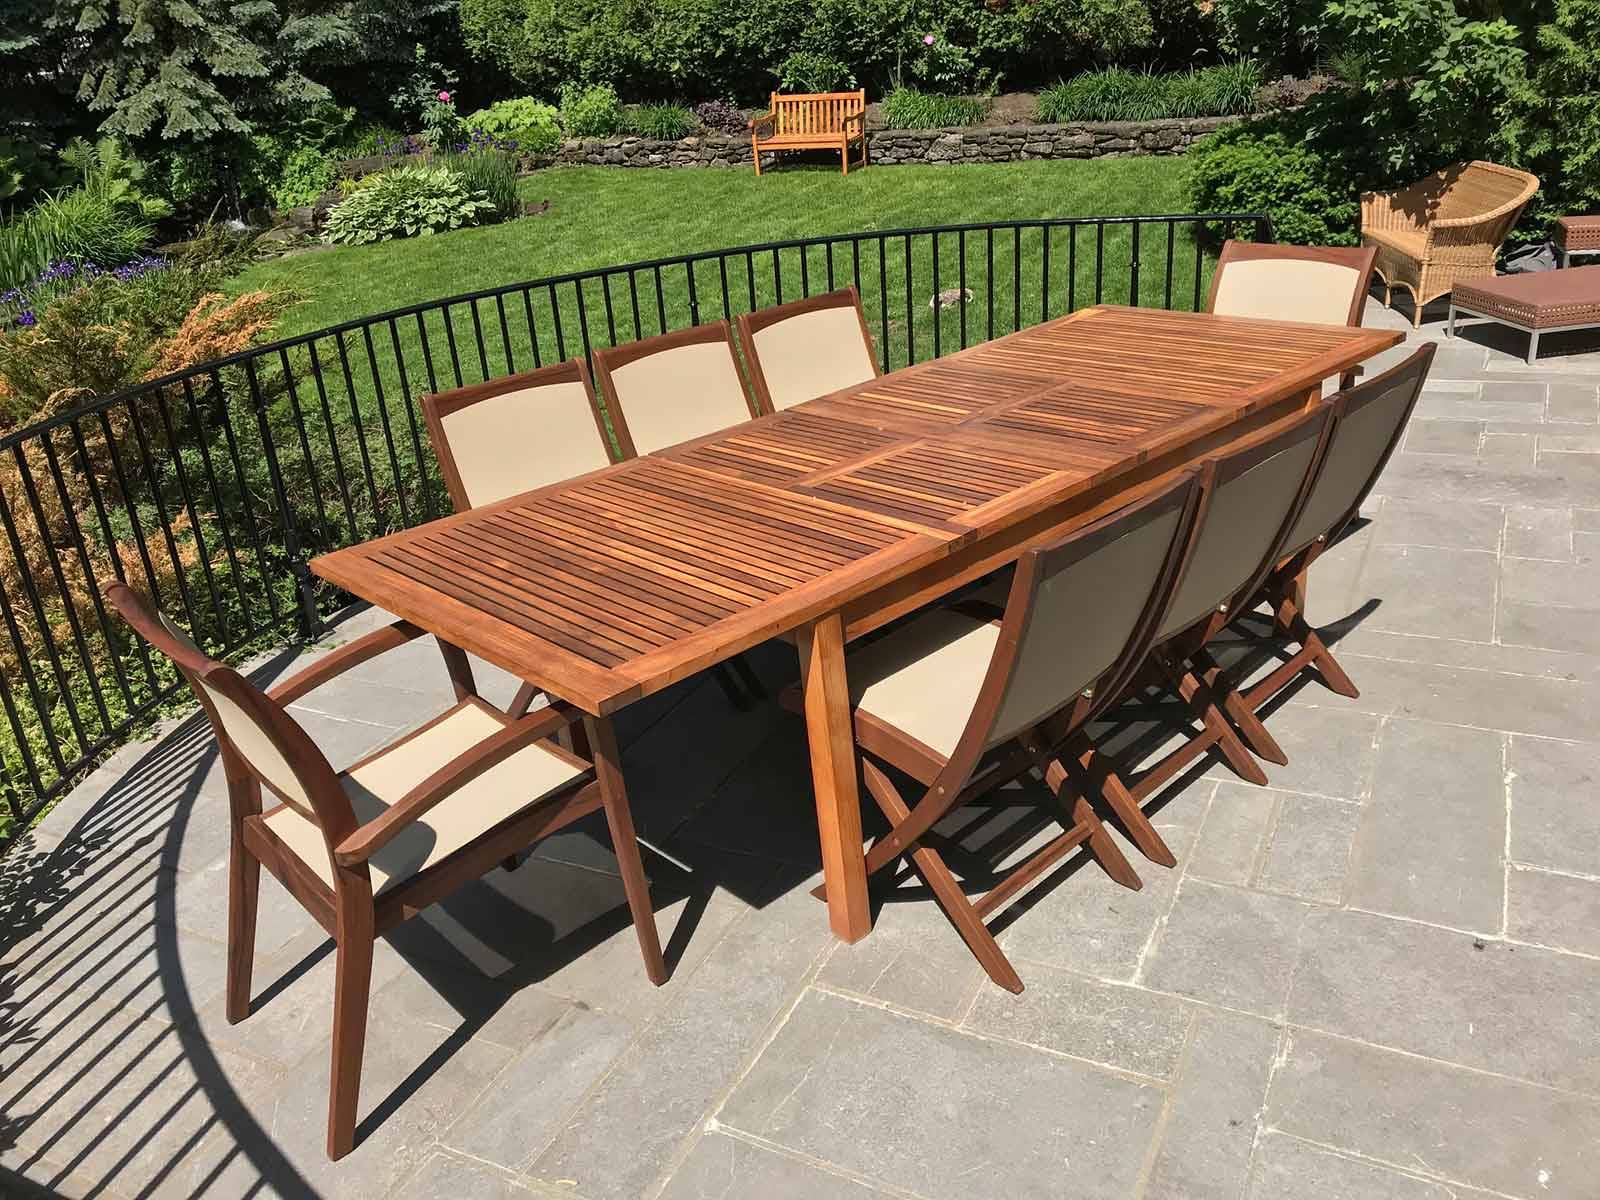 Meubles Exterieurs Montreal Outdoor Patio Furniture Specialist In Montreal Jml Inc